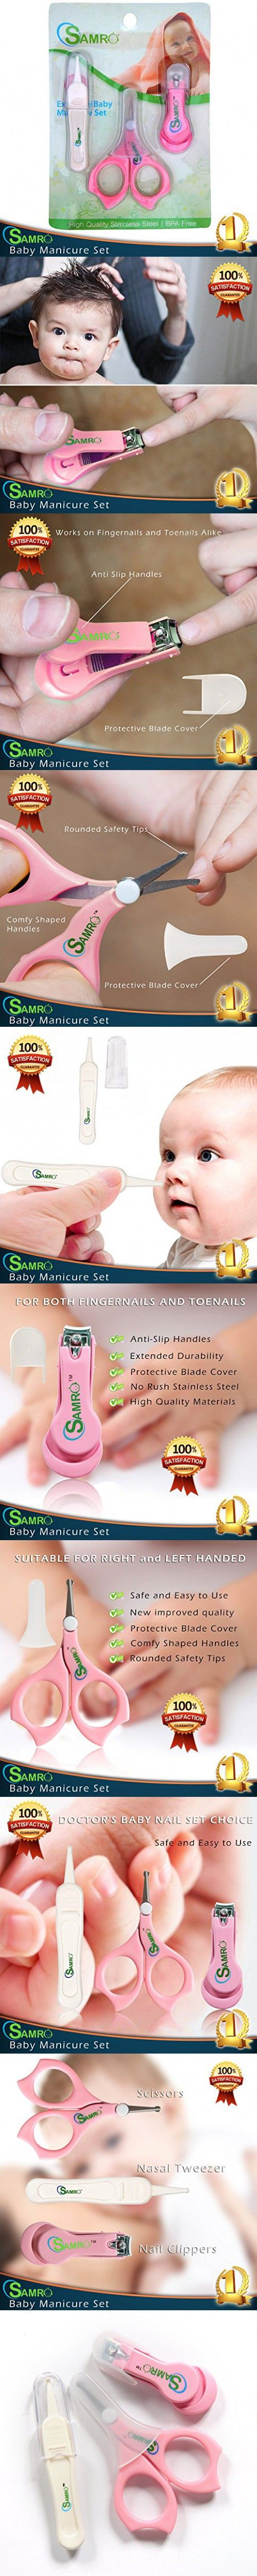 15 best Baby nail clippers images on Pinterest | Baby nails, Kid ...